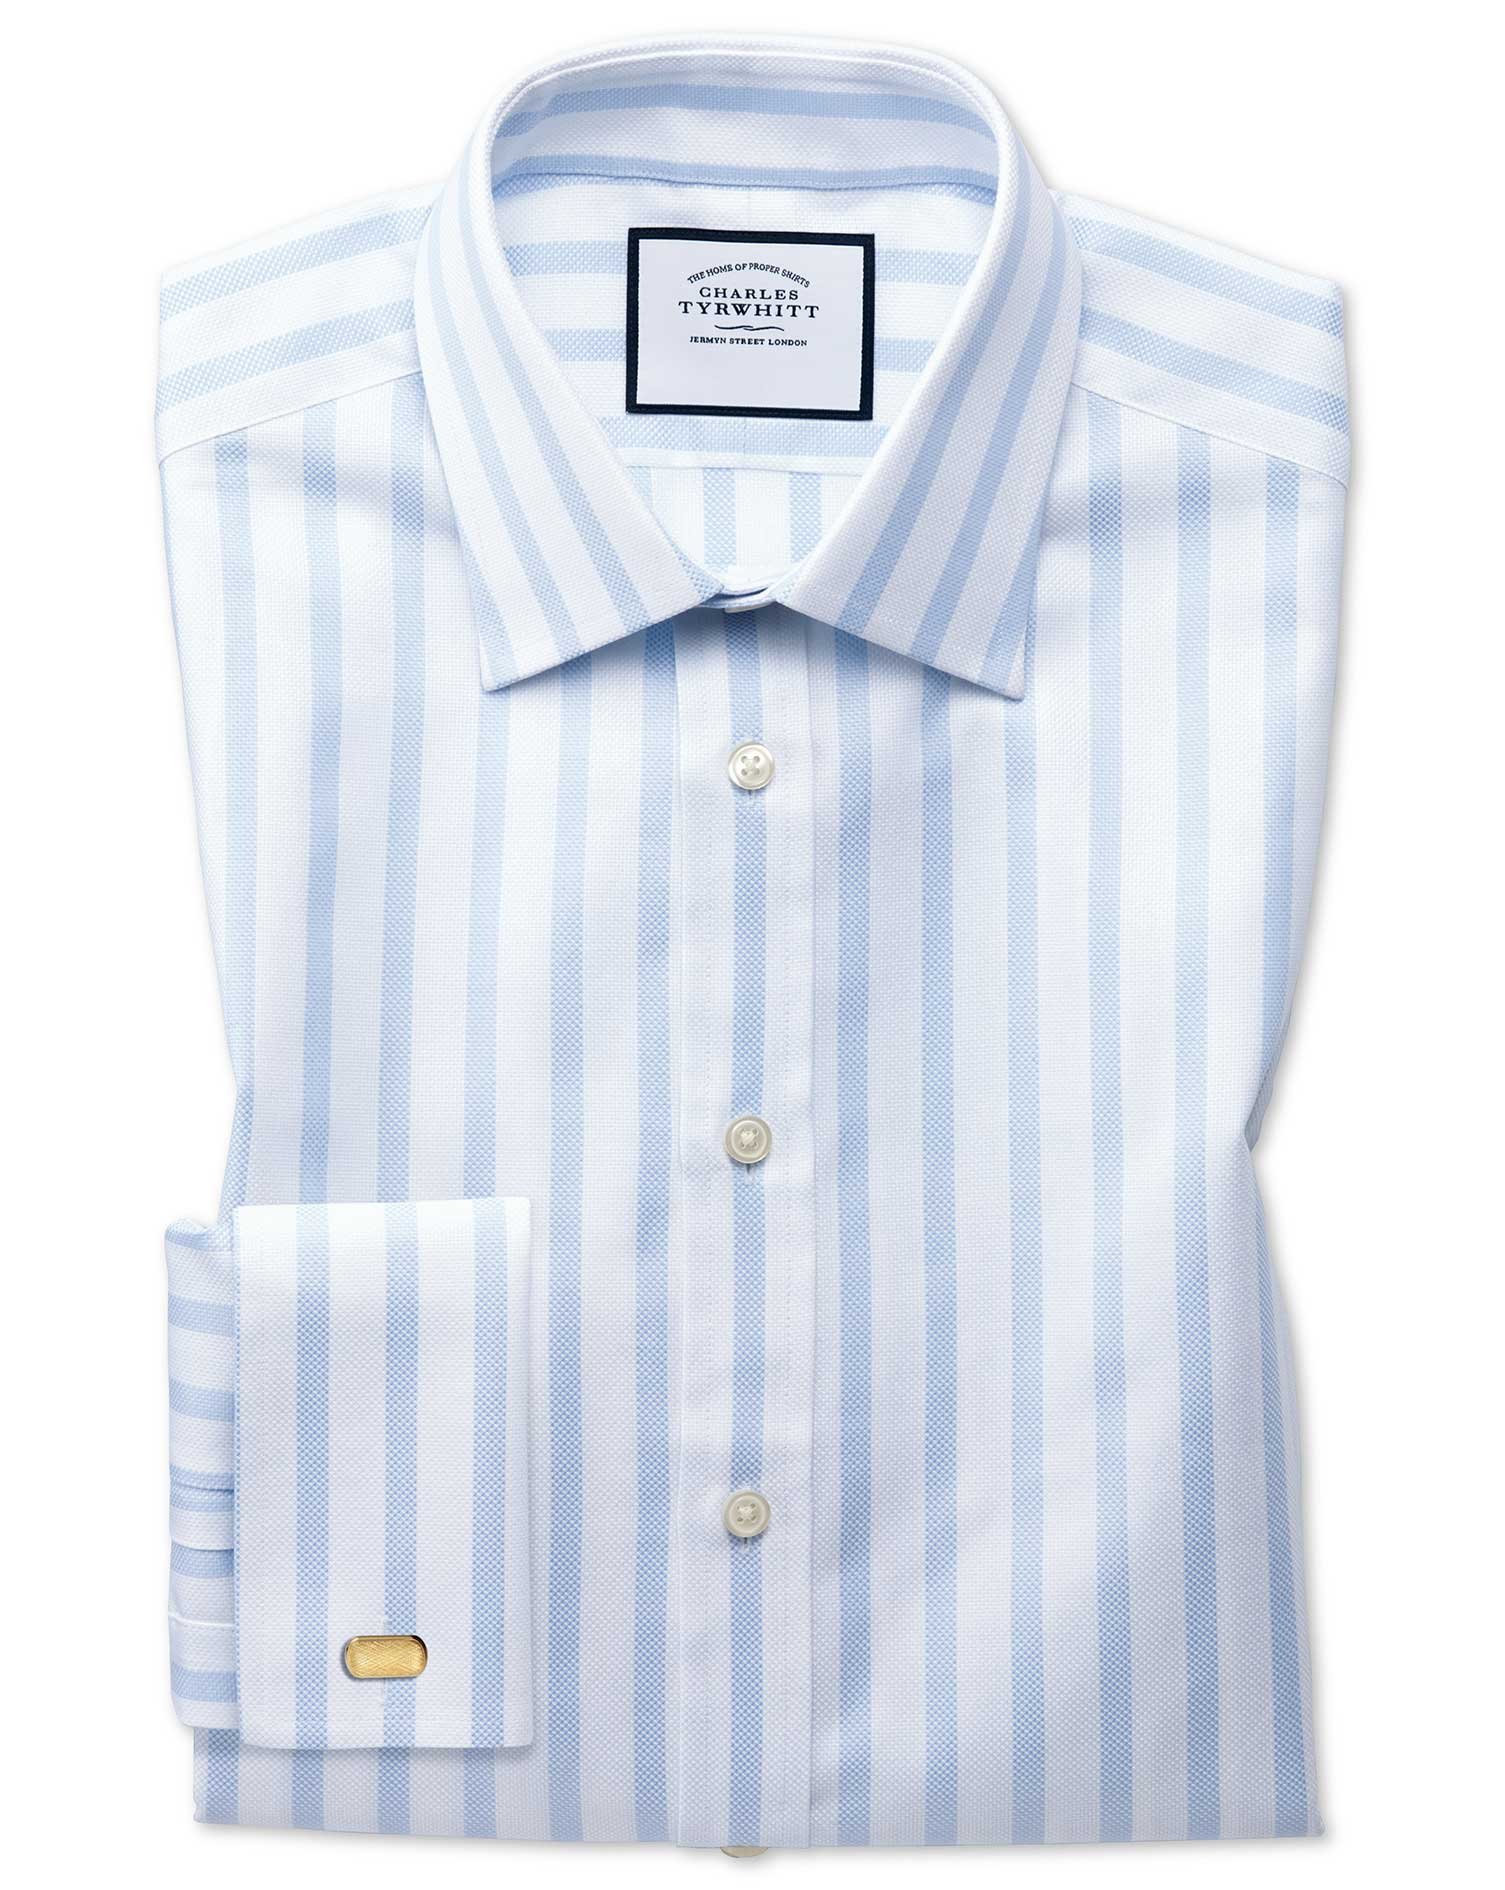 Extra Slim Fit Egyptian Cotton Royal Oxford Sky Blue Stripe Formal Shirt Double Cuff Size 14.5/33 by